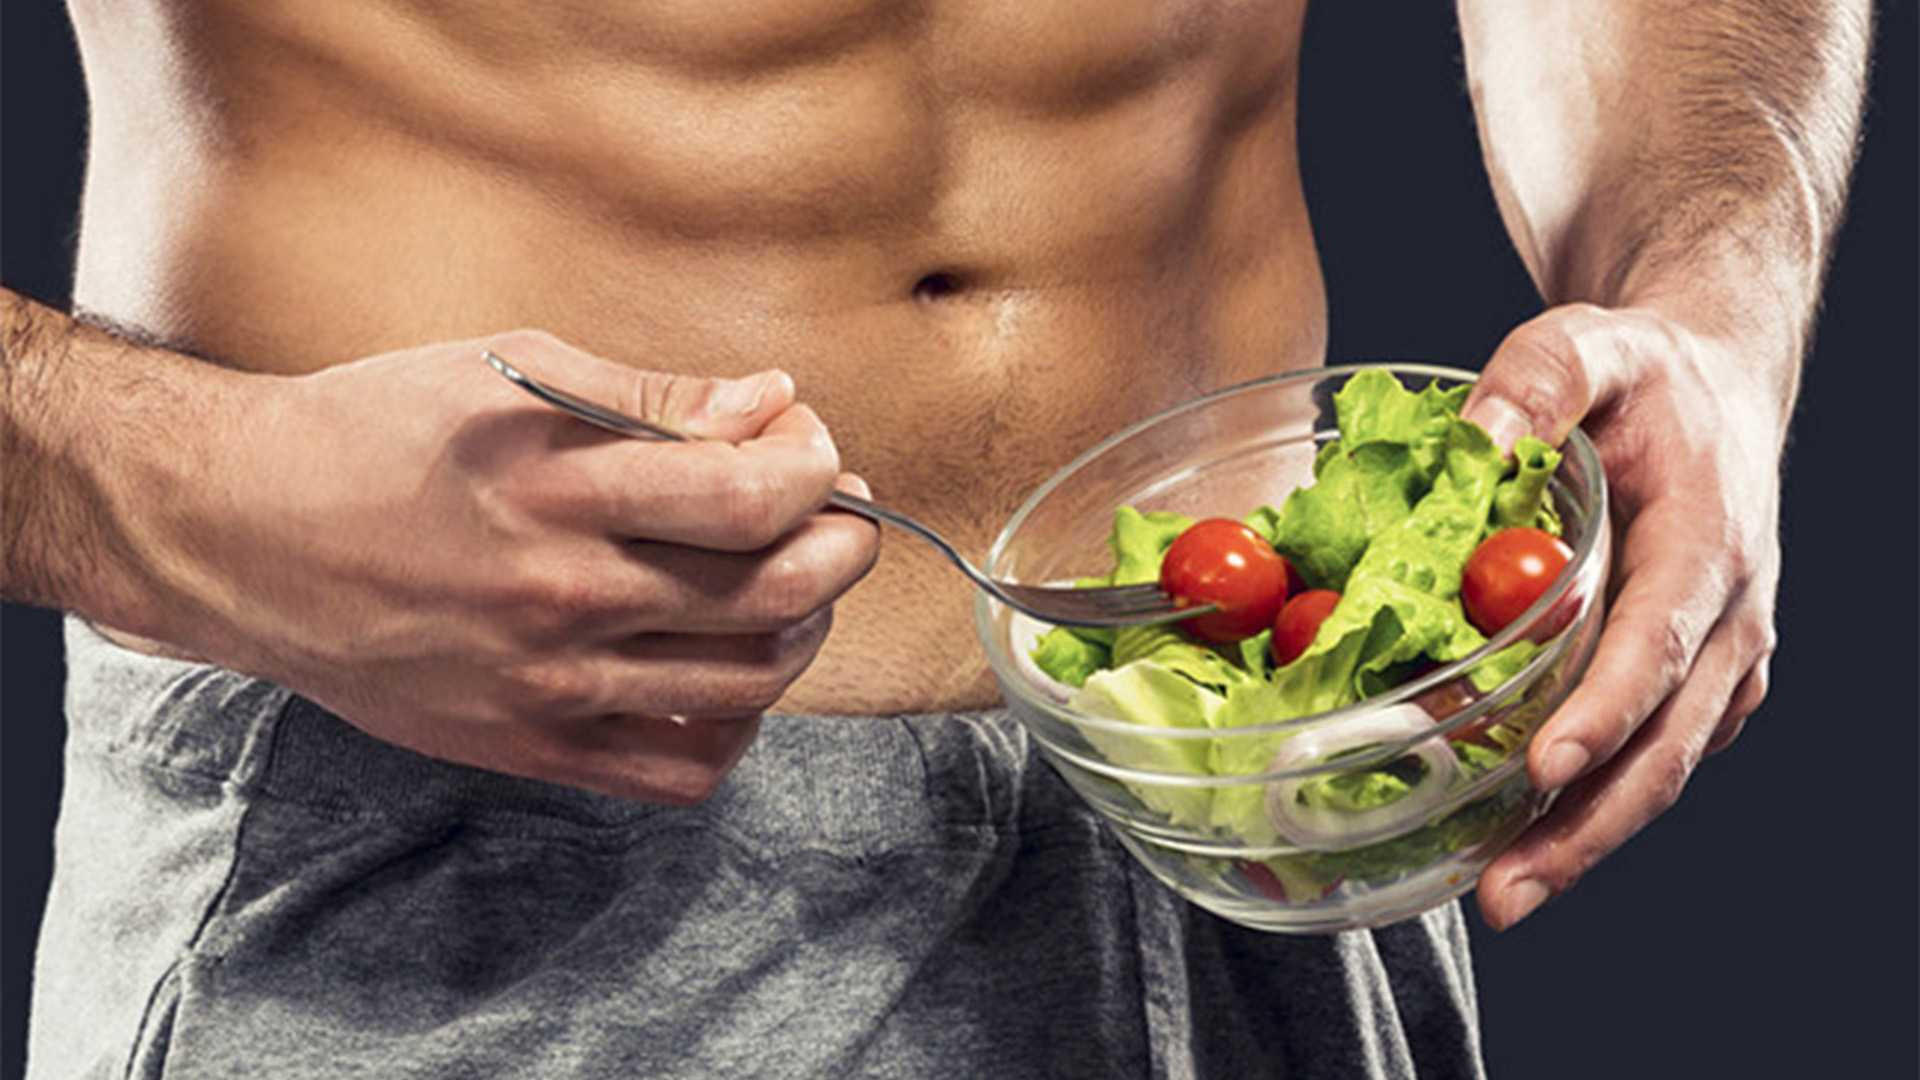 Healthy Snacks For Men  Foods you should avoid to prevent bloating